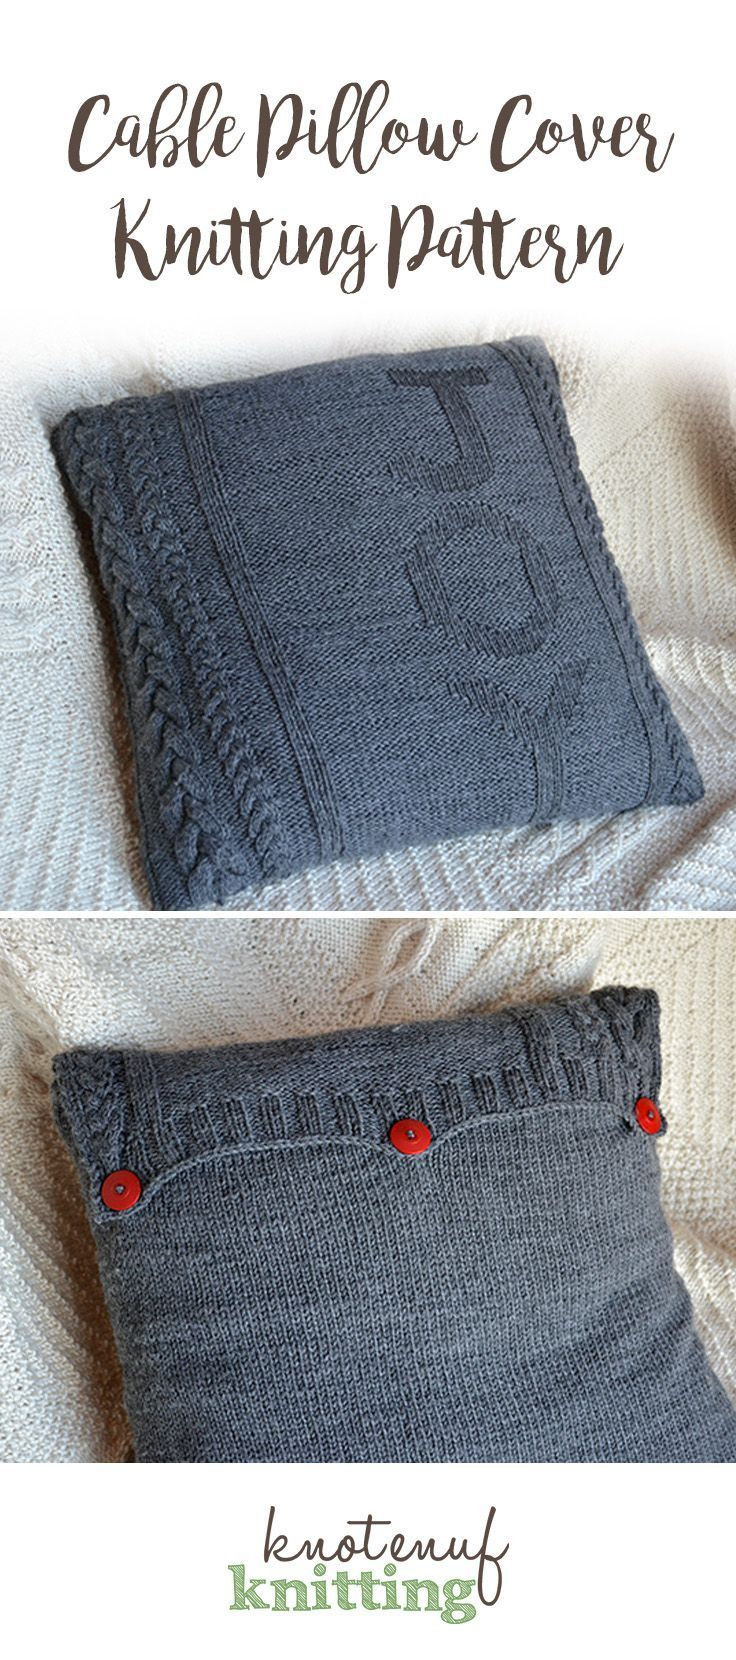 Here's a cute knitting pattern for a festive Christmas throw pillow cover. The